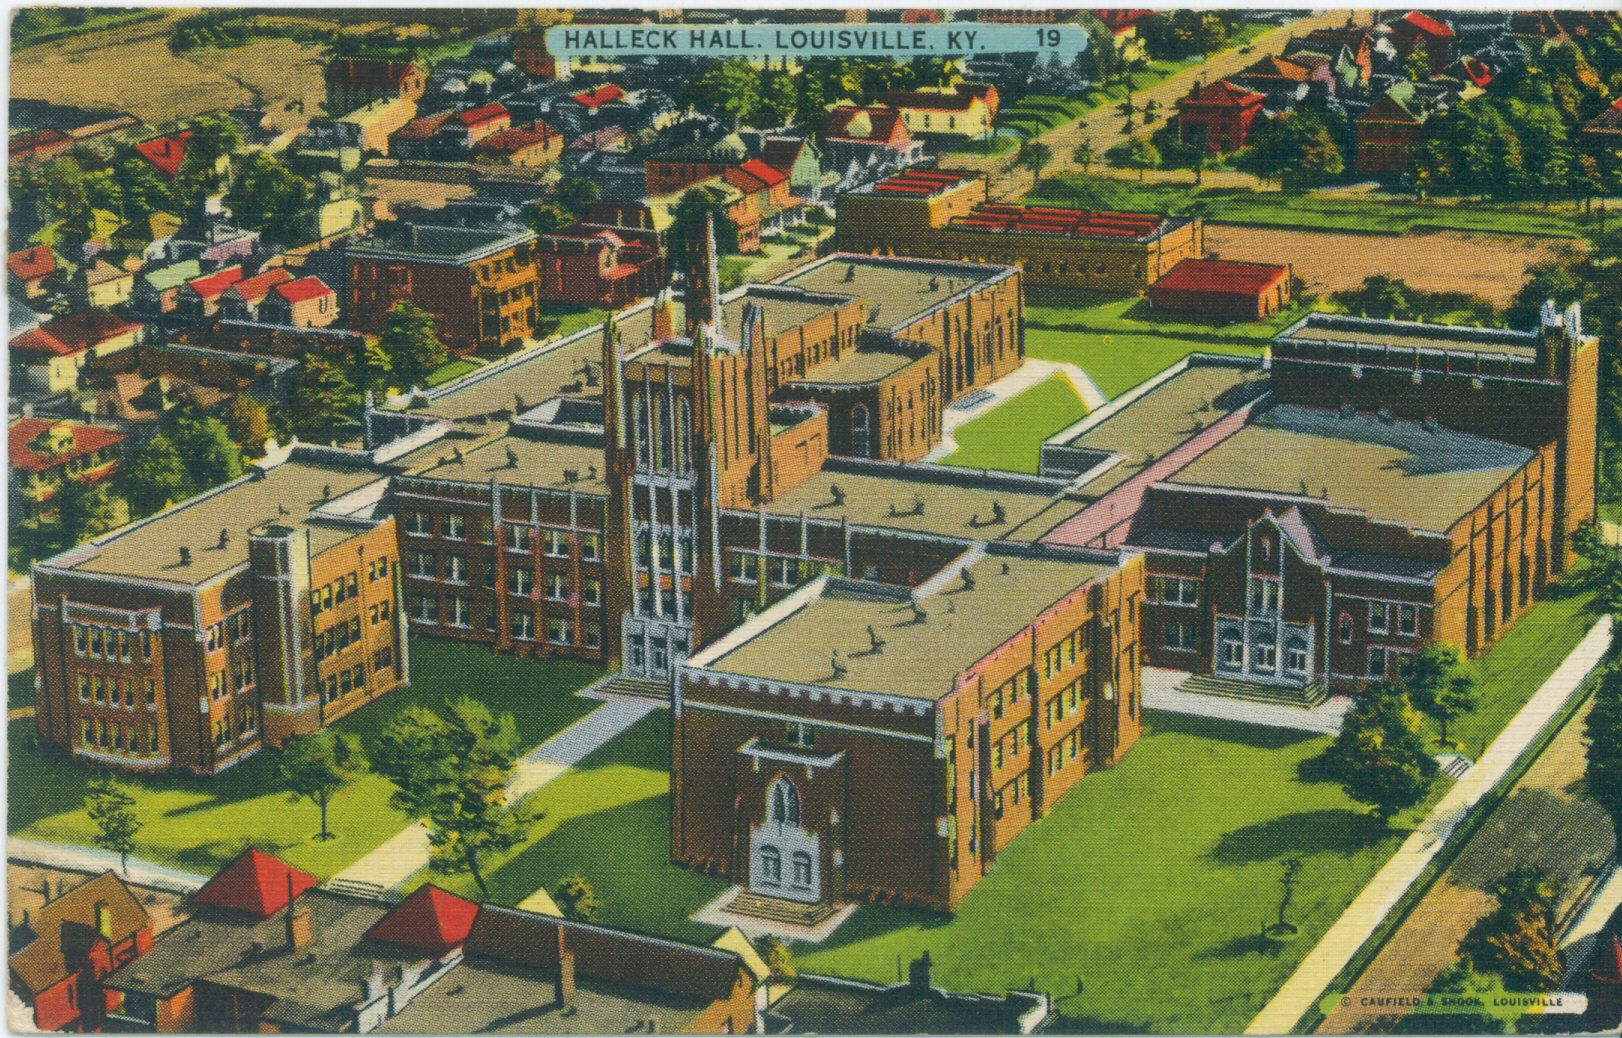 Vintage Post Cards of Old Louisville - Halleck Hall. ""